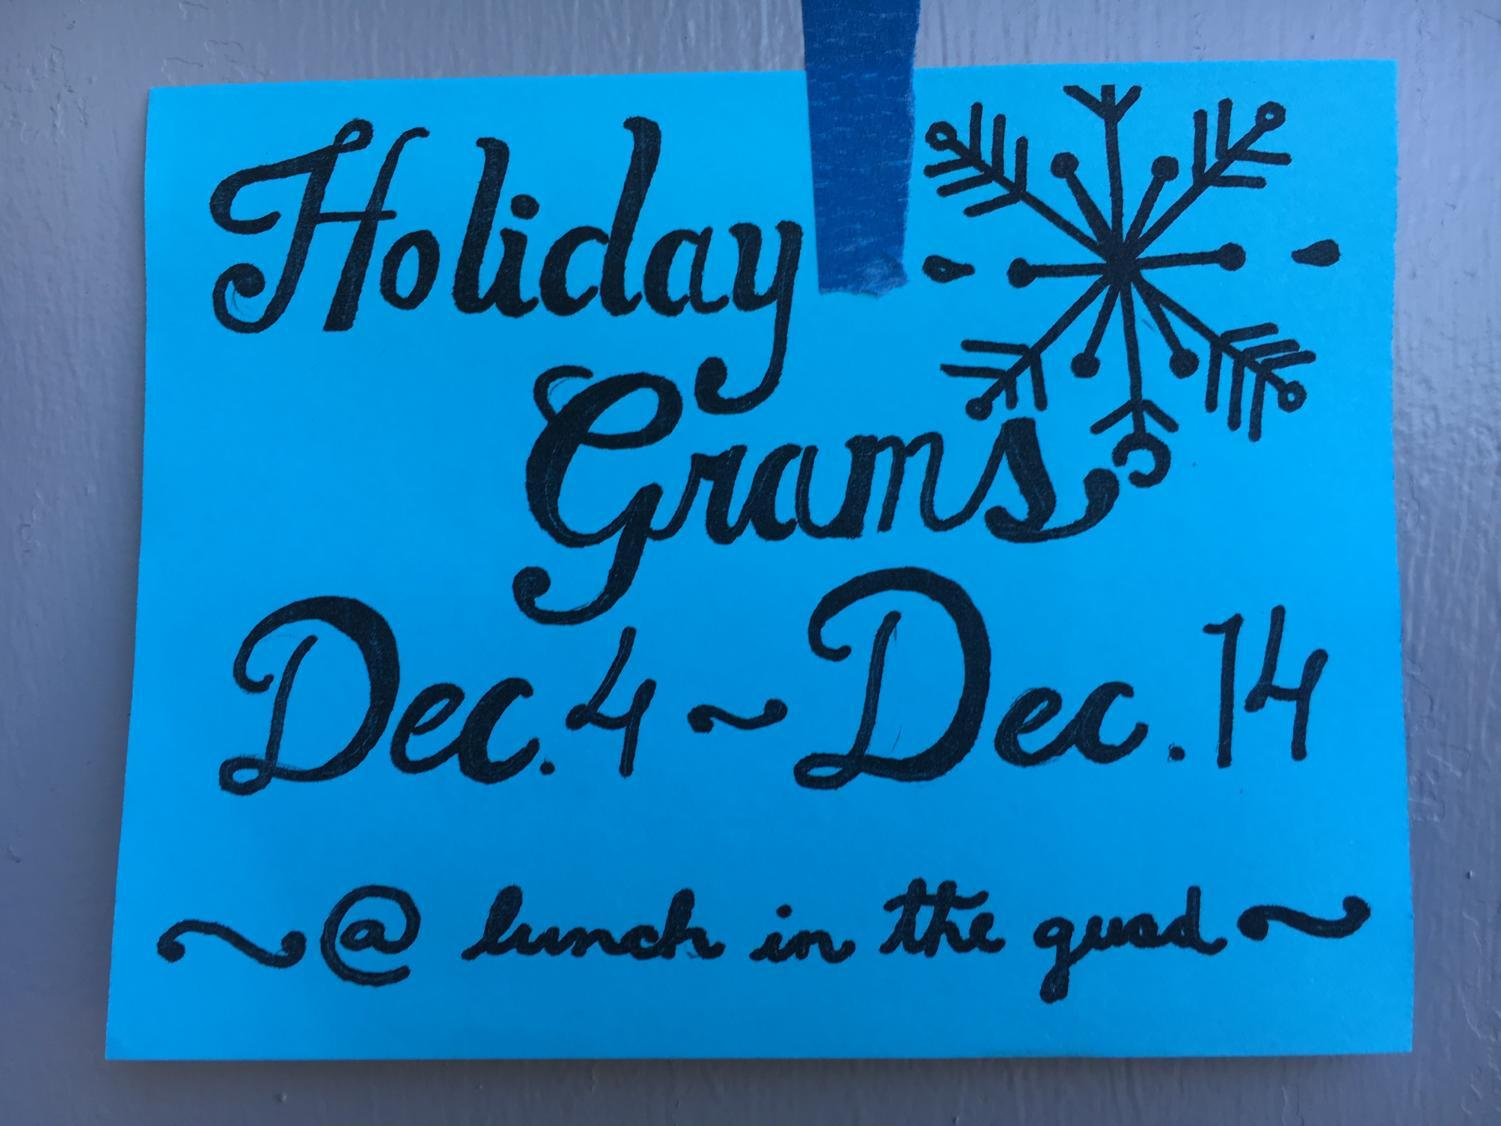 Holiday grams are one of the many activities that will be going on this holiday season. Be sure to get holiday grams at lunch in the quad from Dec.4 to Dec. 14.